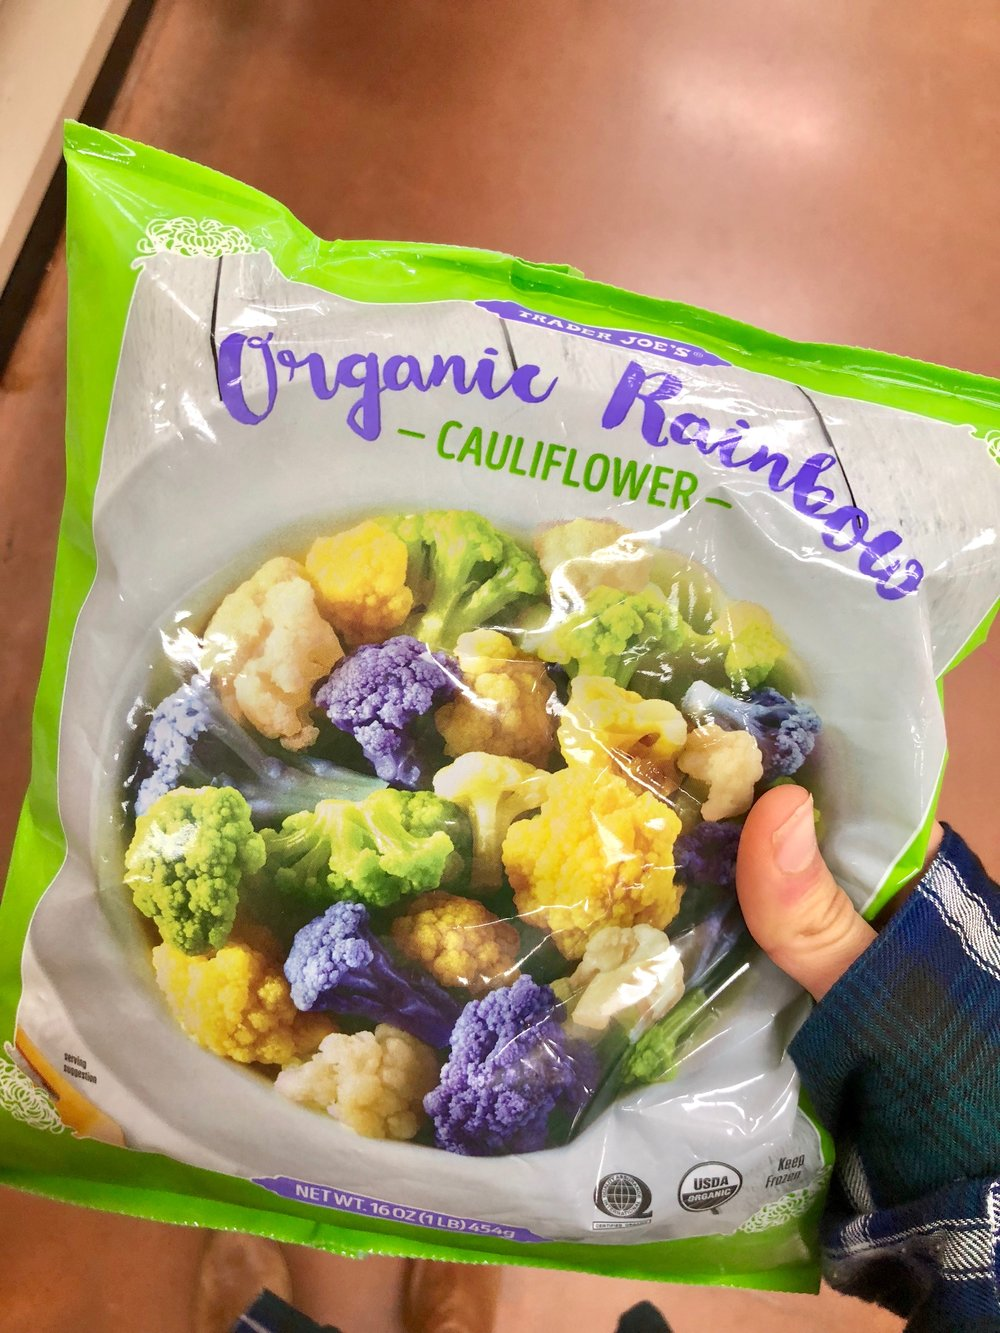 Nothing fancy, just steamed cauliflower here…. but it's rainbow colored which makes everything more fun in my opinion. If you is lame and want white cauliflower they have that too.